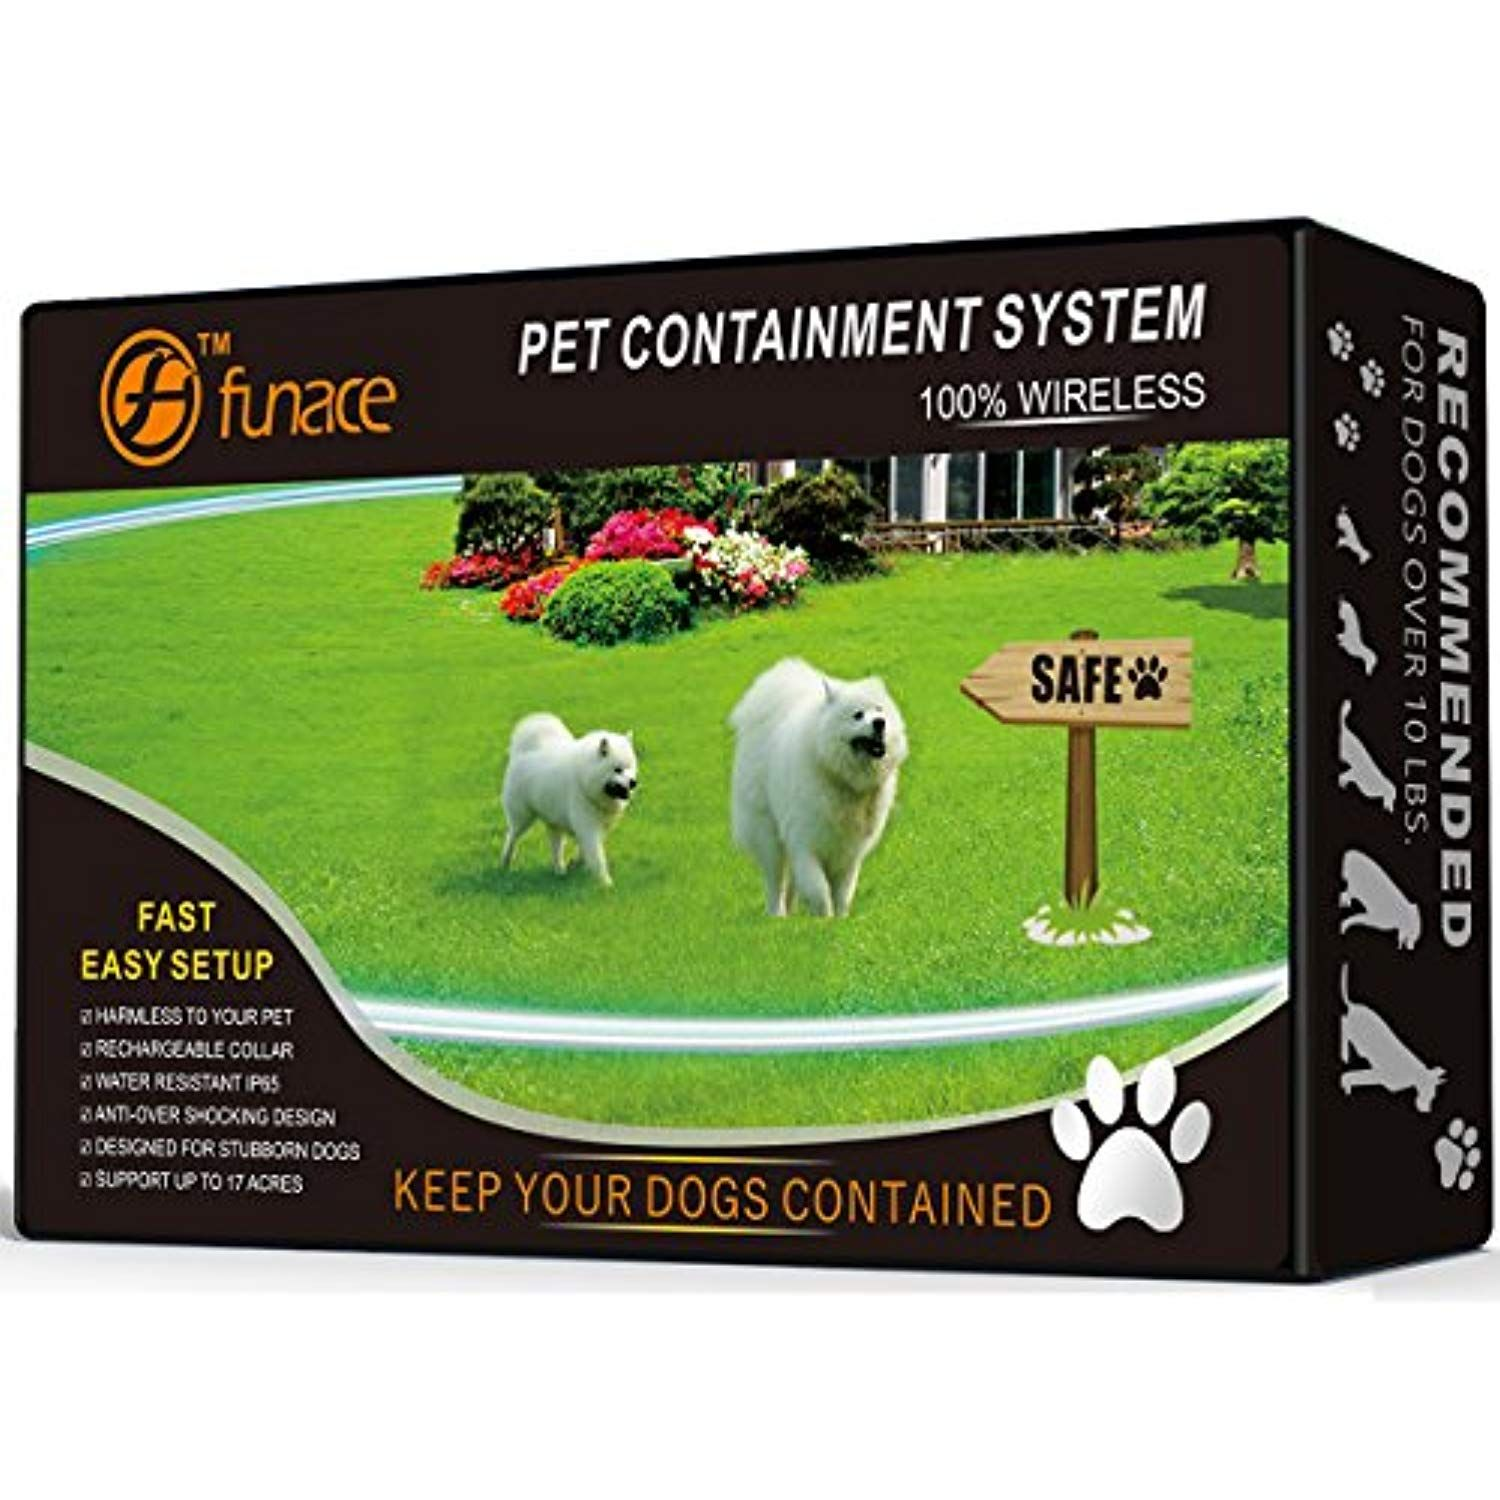 100 Wireless Pet Containment System Wifi Radio Dog Fence No Wire No Dig No Bury Rechargeable And Pet Containment Systems Dog Fence Wireless Dog Fence